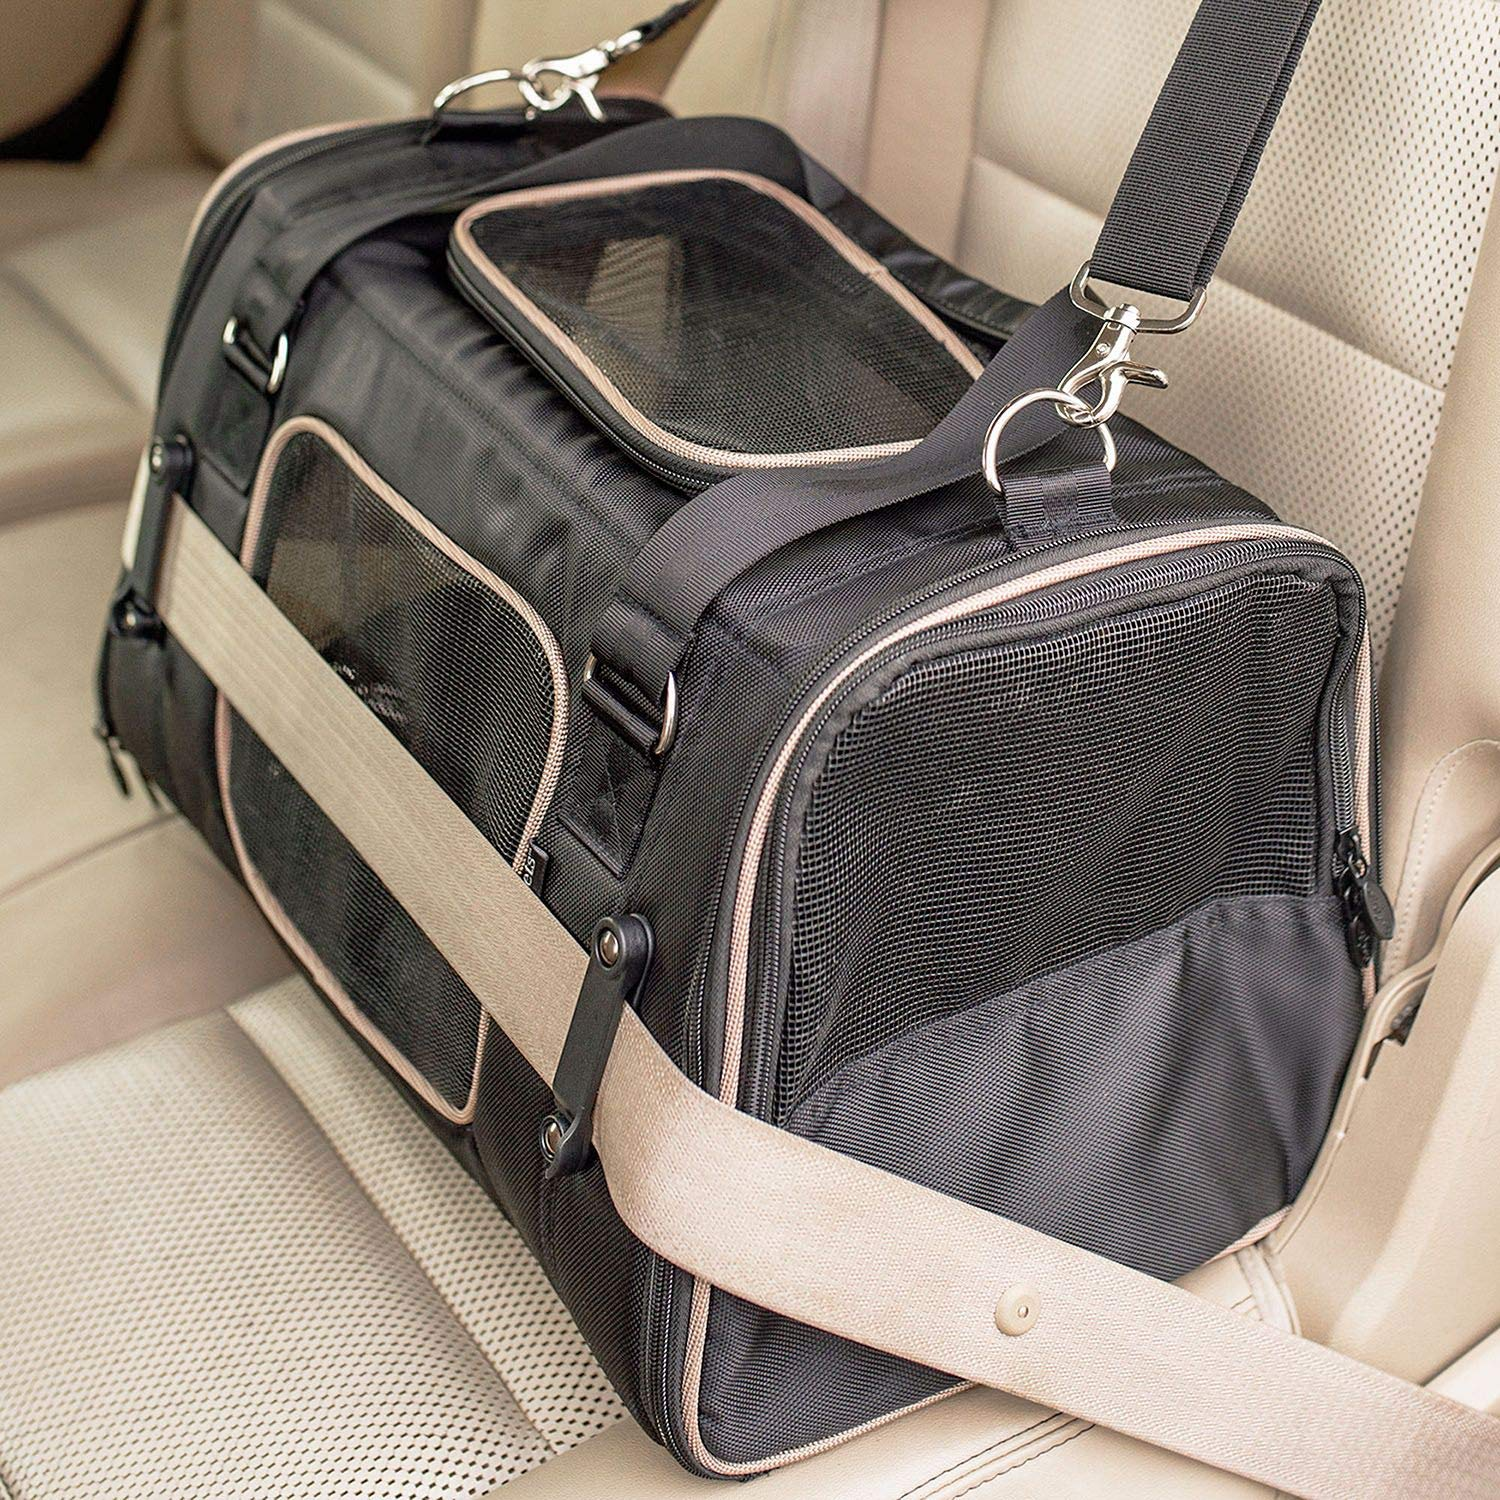 Gen7Pets Commuter Buckle In Car Safety Seat and Shoulder Carrier for Dogs and Cats